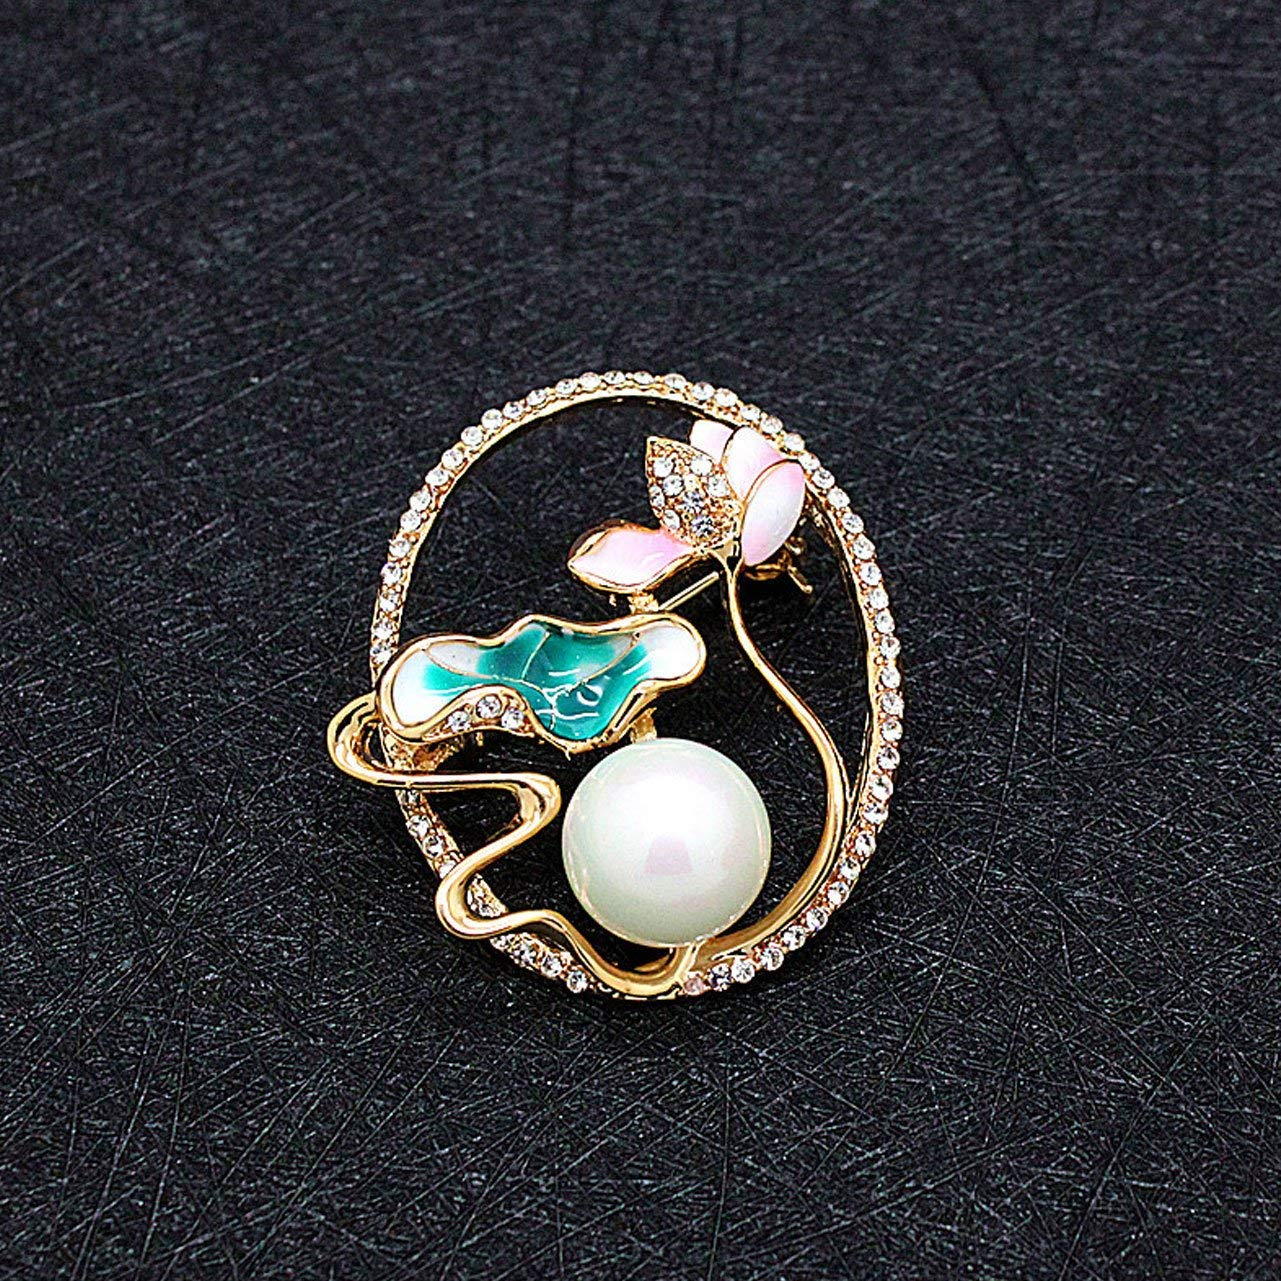 c37a884c2 Get Quotations · Jewelry Crystal Flower Scarf Buckle Brooch pins Simple  Pearl Silk Scarf Buckle Clip for Women Clothing